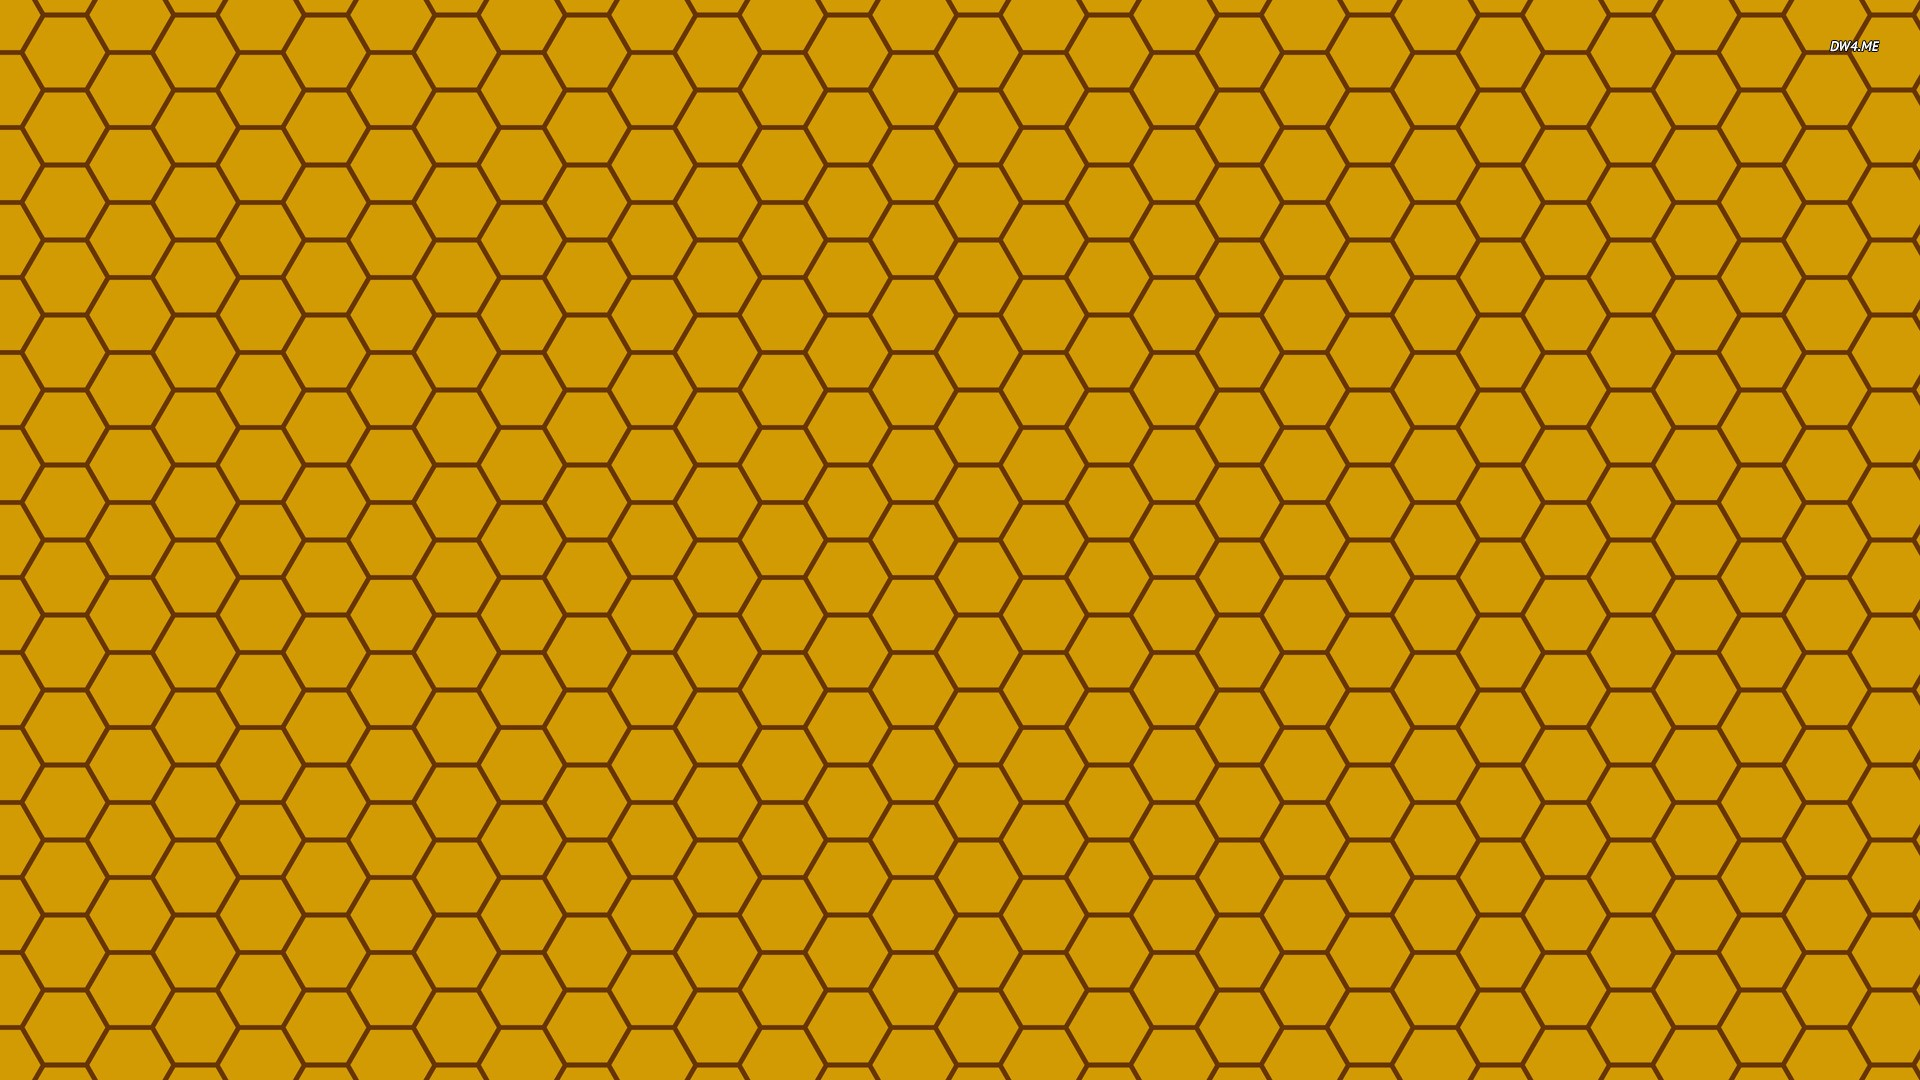 Honeycomb wallpapers background images page 6 - 1920x1080 Honeycomb Wallpaper Vector Wallpapers 496